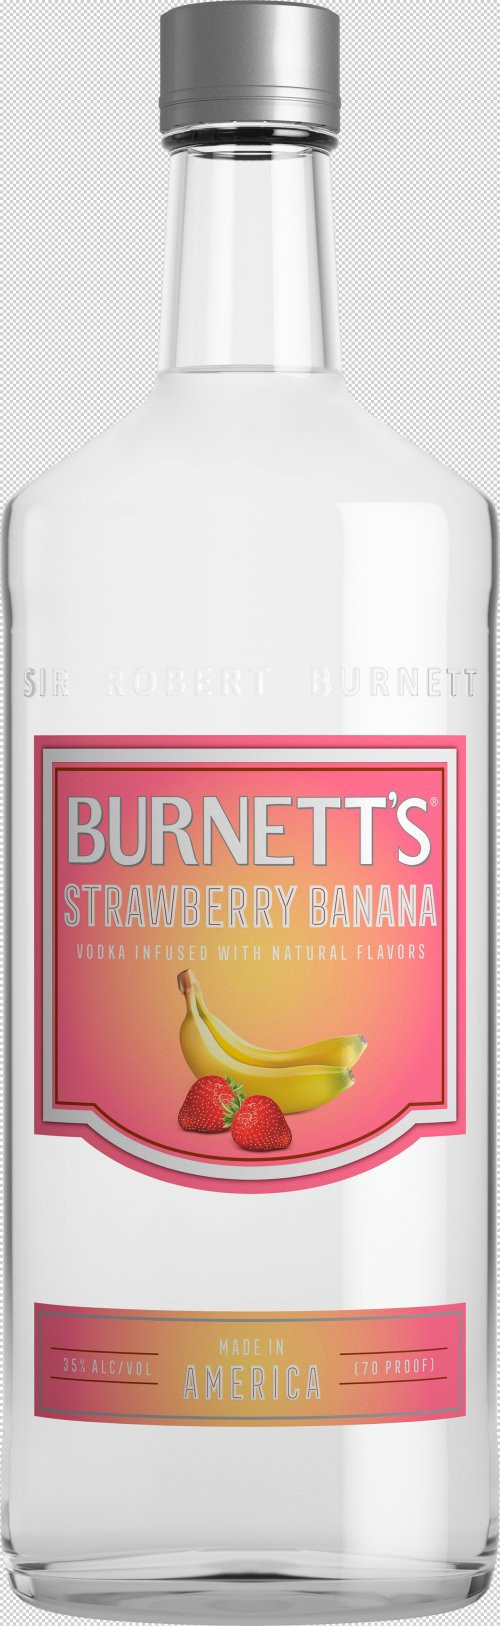 Burnett's Strawberry/Banana Flavored Vodka 1L